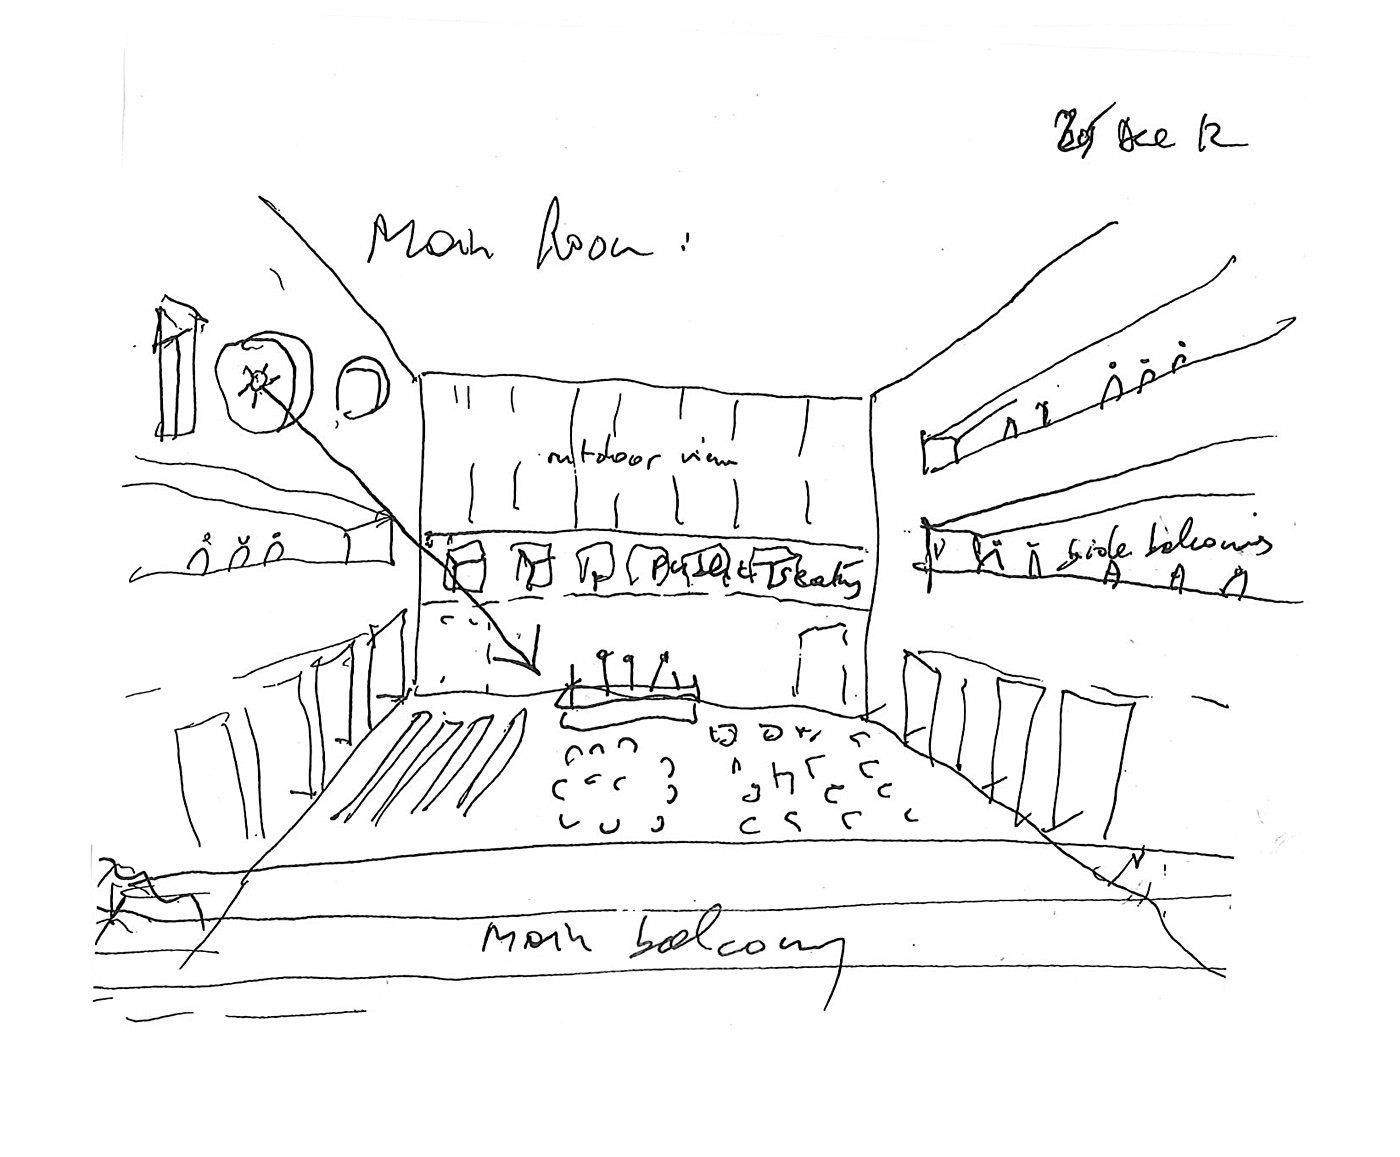 Main room (sketch by Bernard Tschumi); Courtesy of Bernard Tschumi Architects